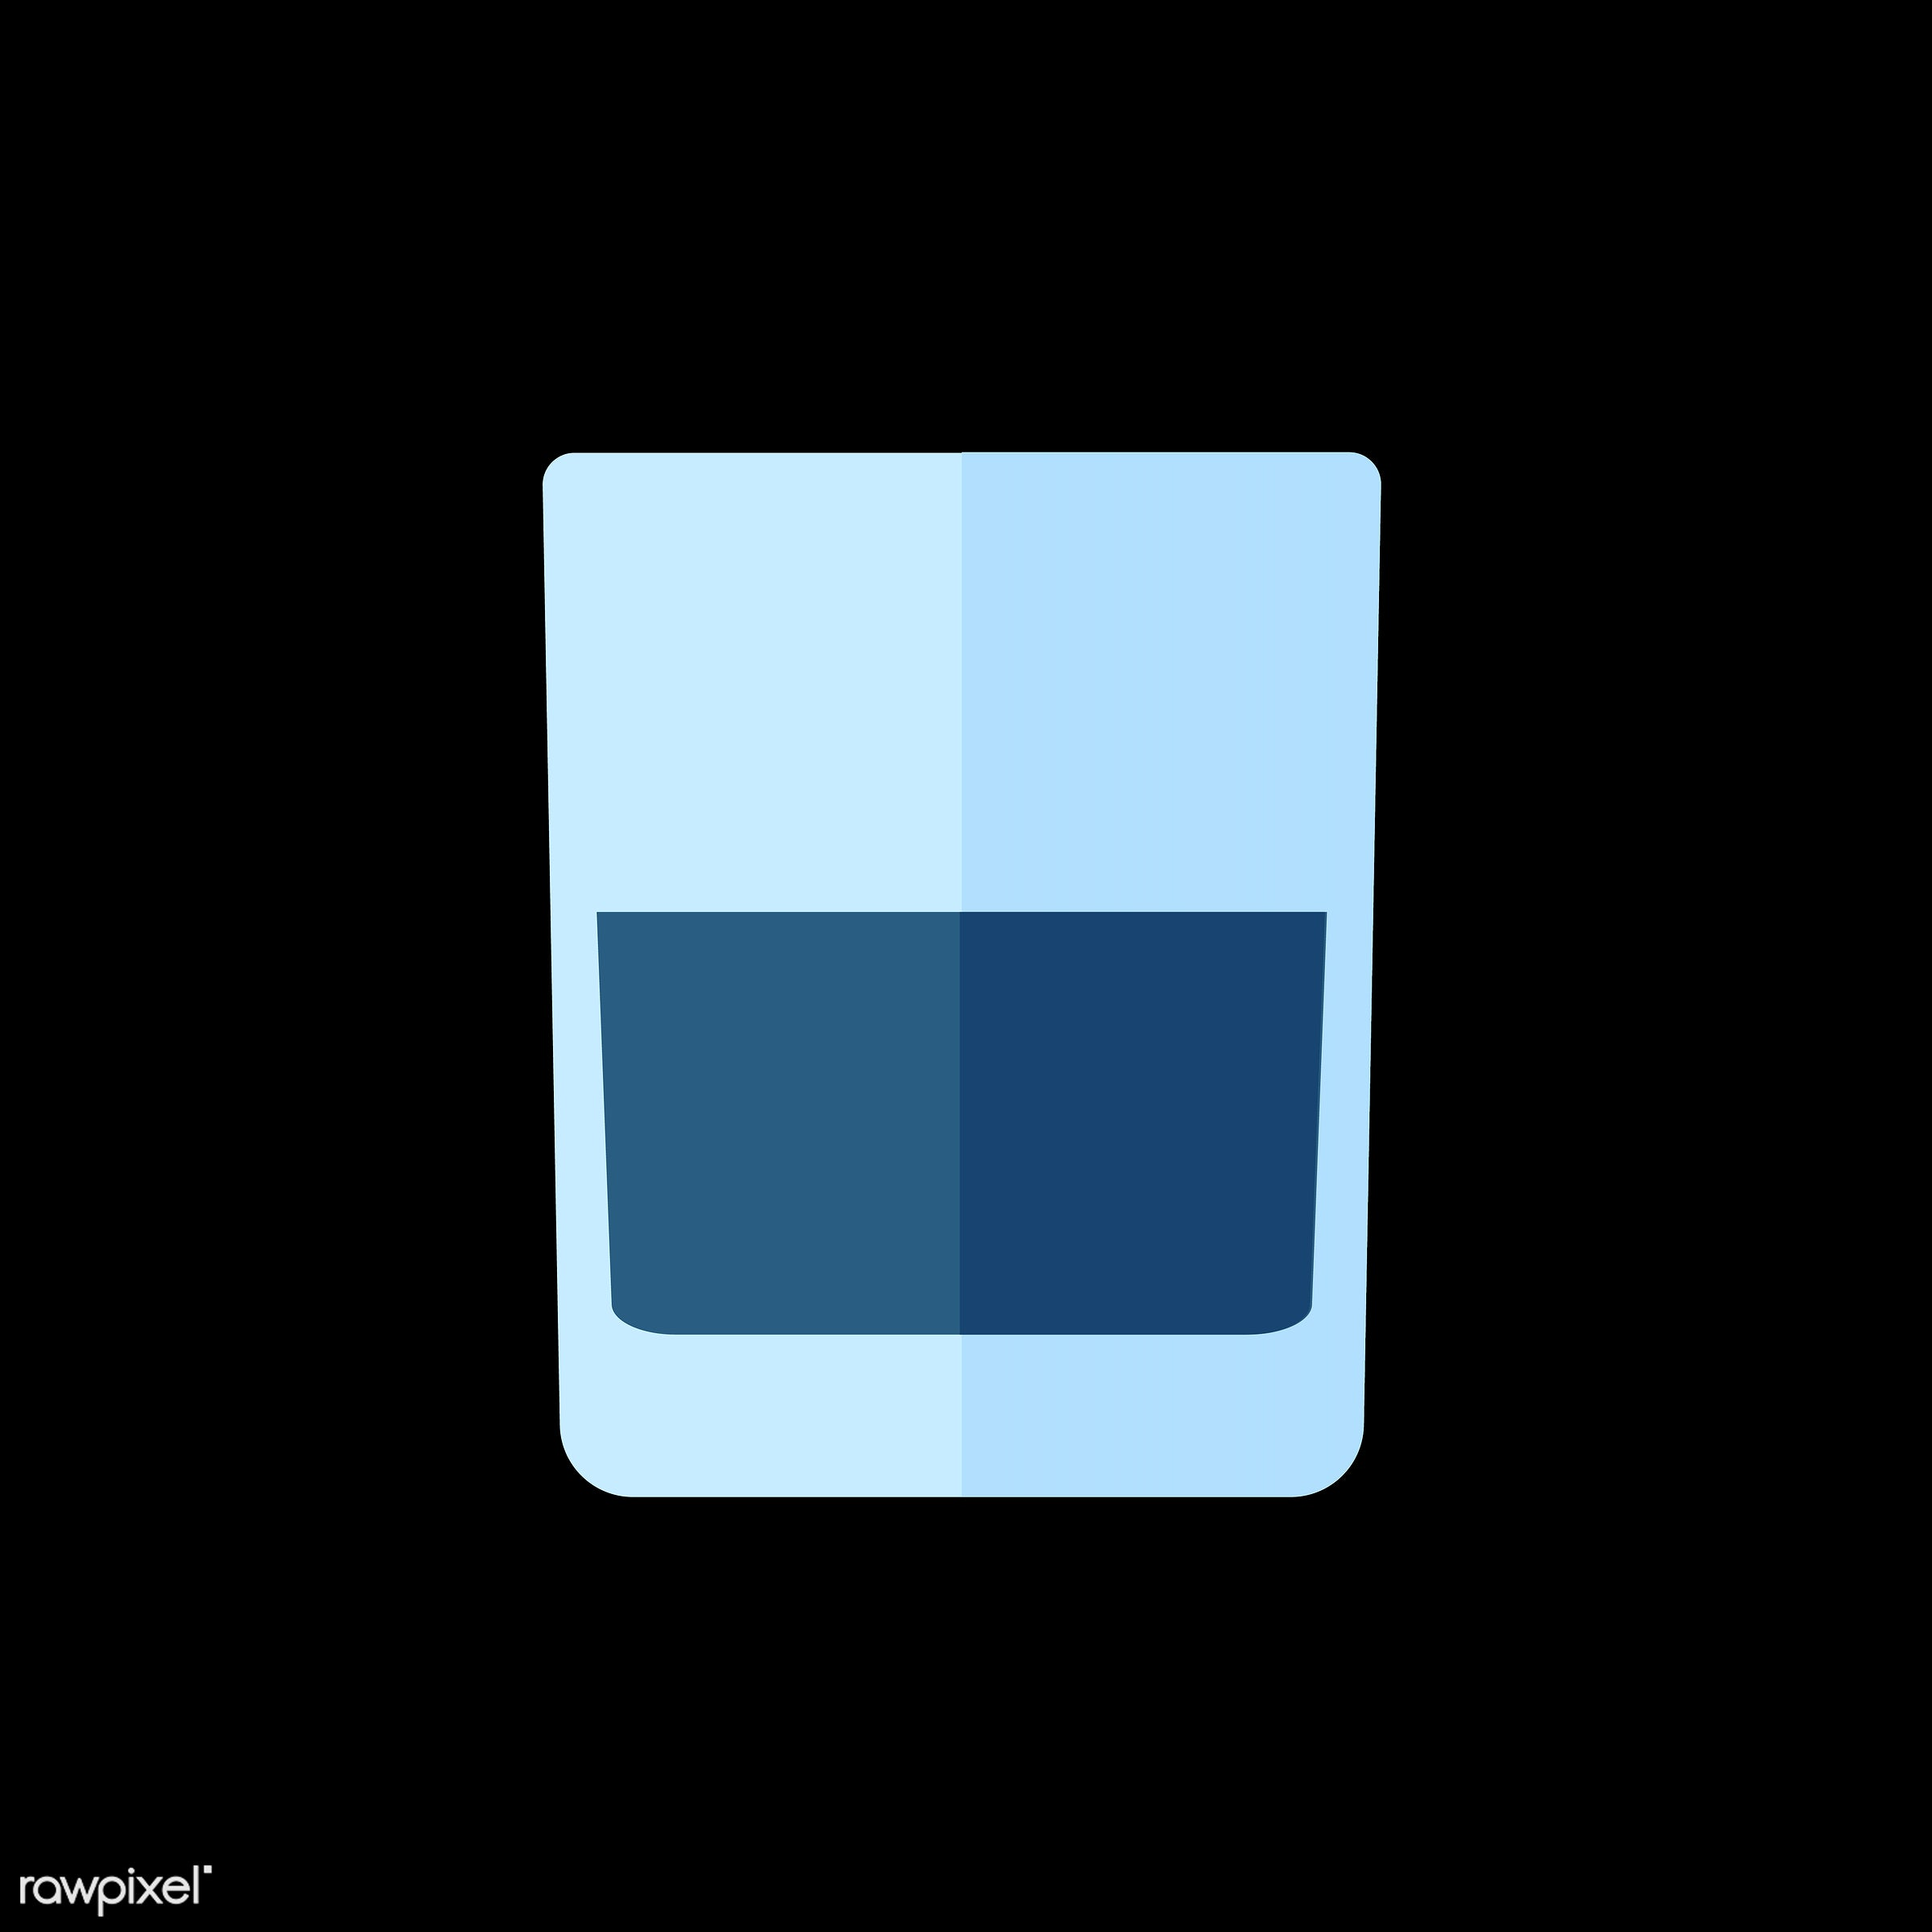 vector, graphic, illustration, icon, symbol, colorful, cute, drink, beverage, water, blue, water glass, glass